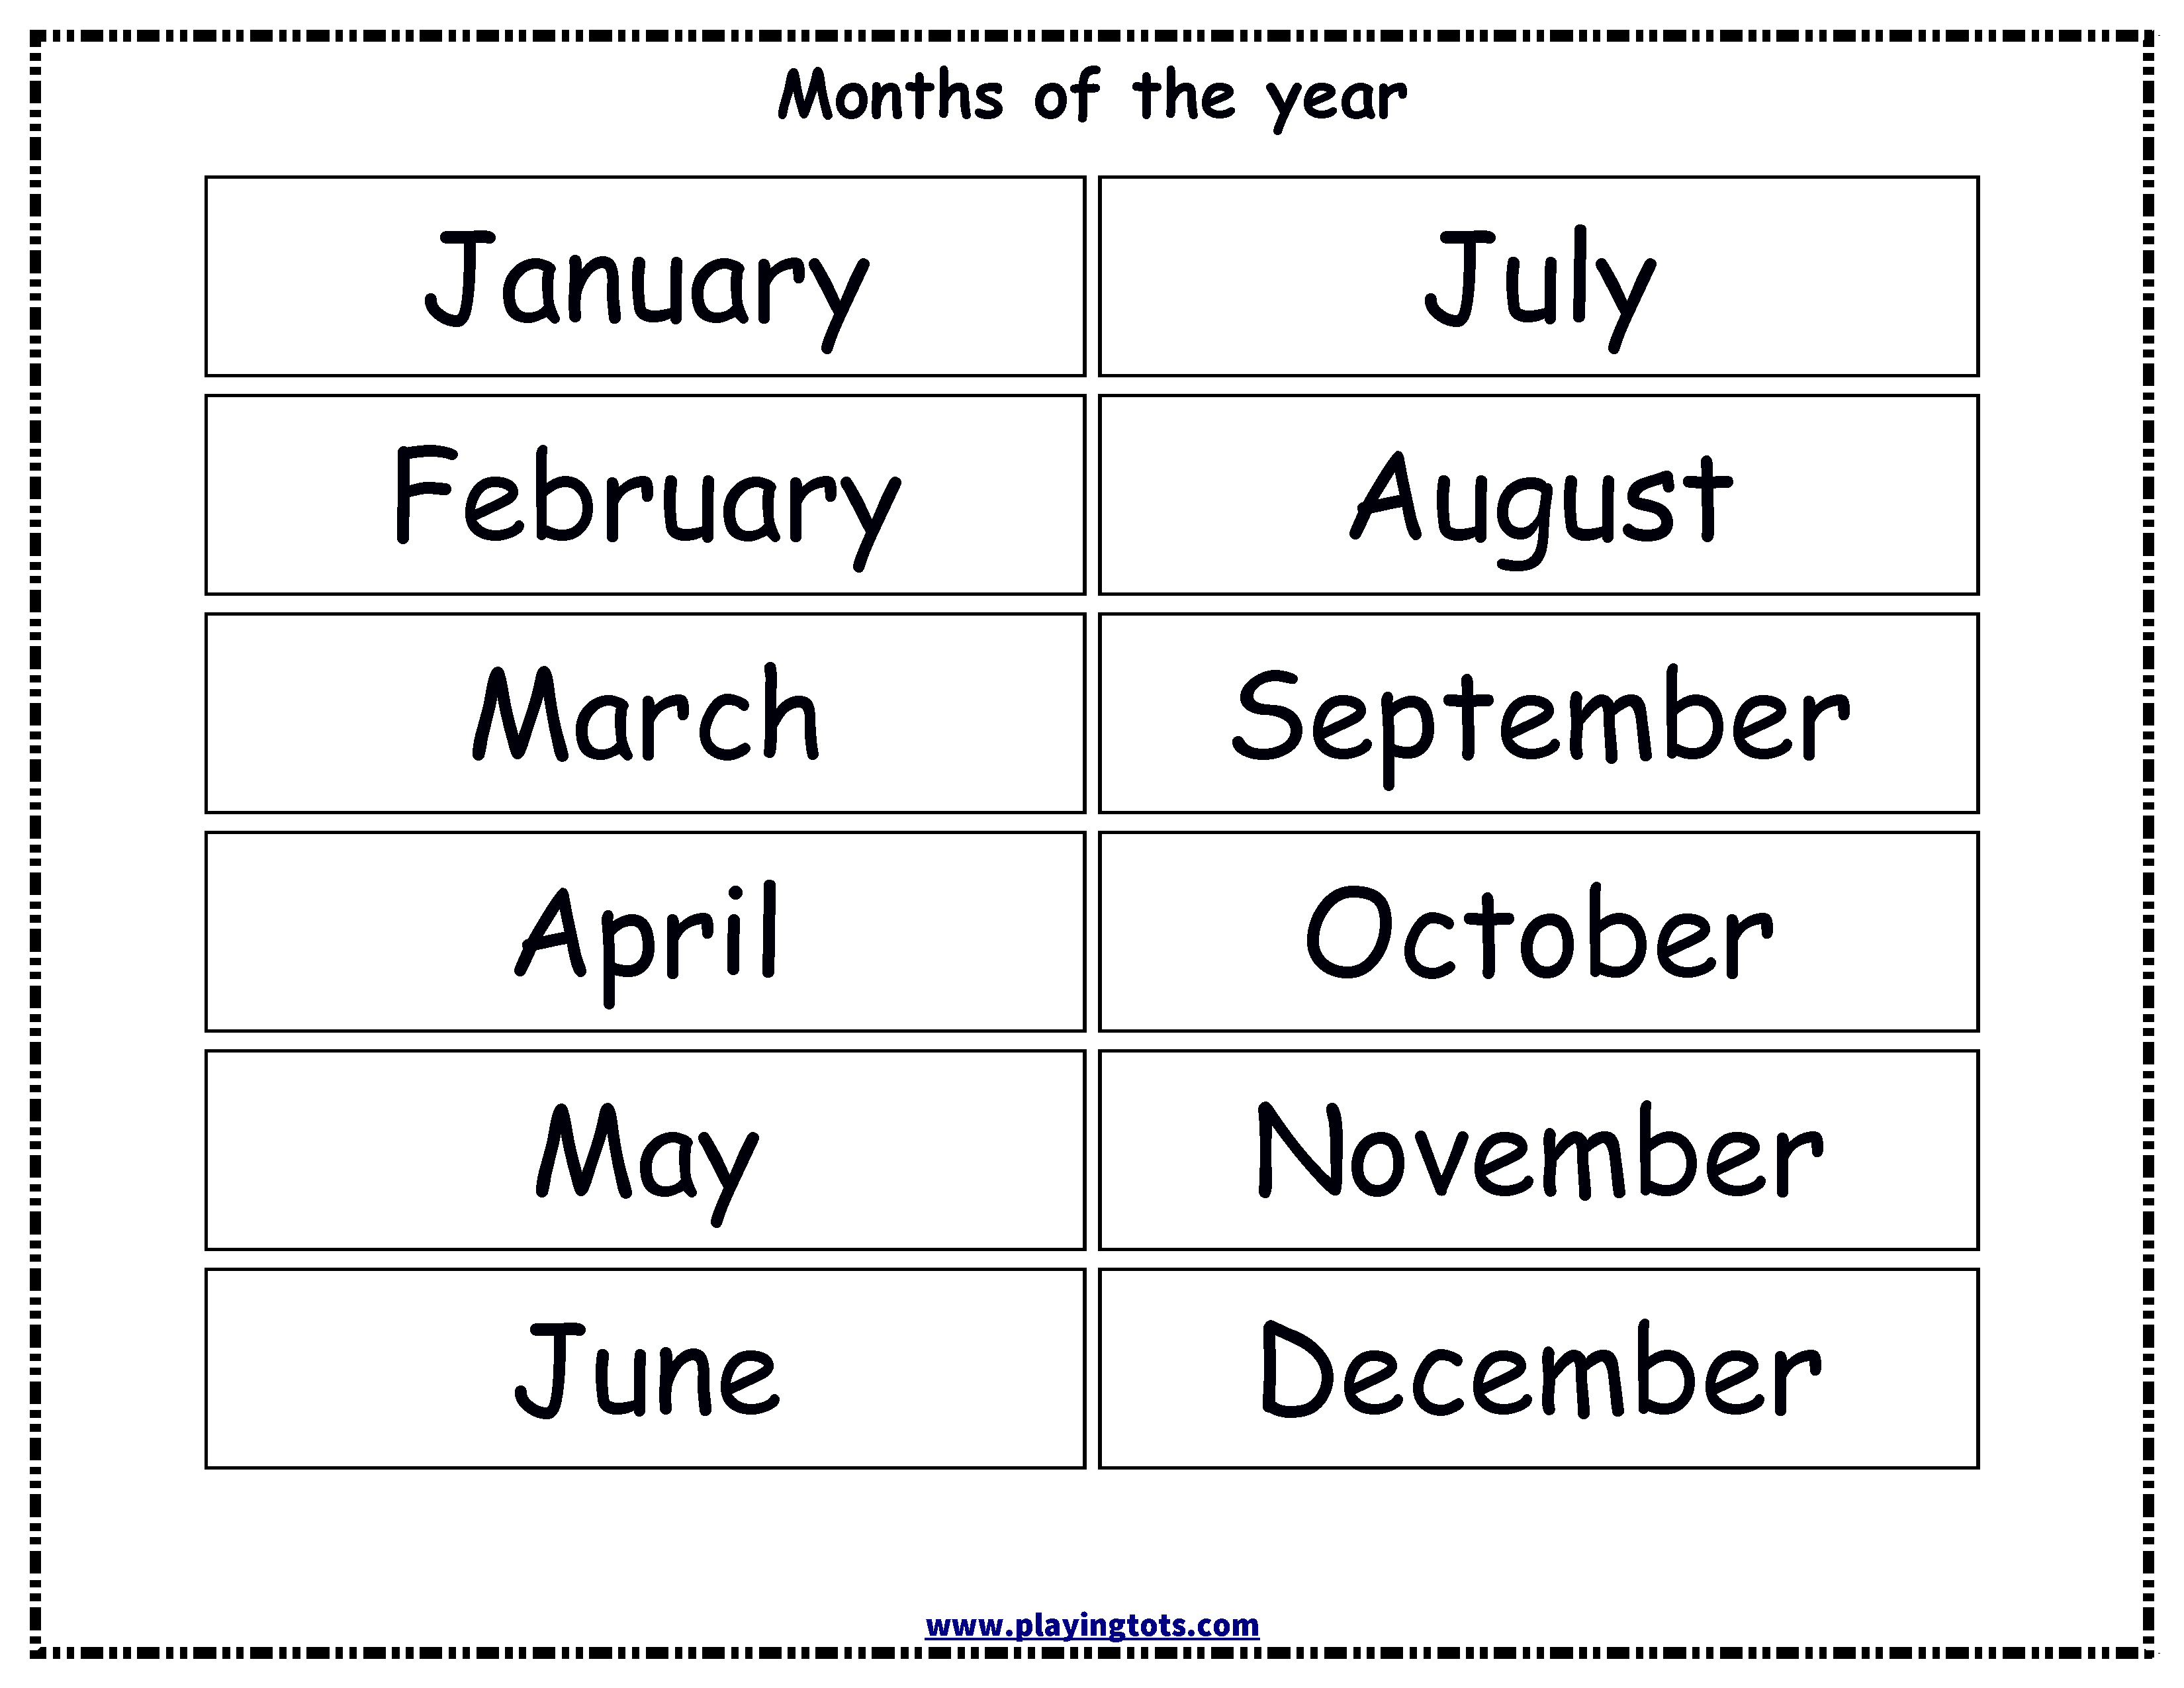 Free Printable Months Of The Year Chart | Alivia Learning Folder - Free Printable Months Of The Year Chart